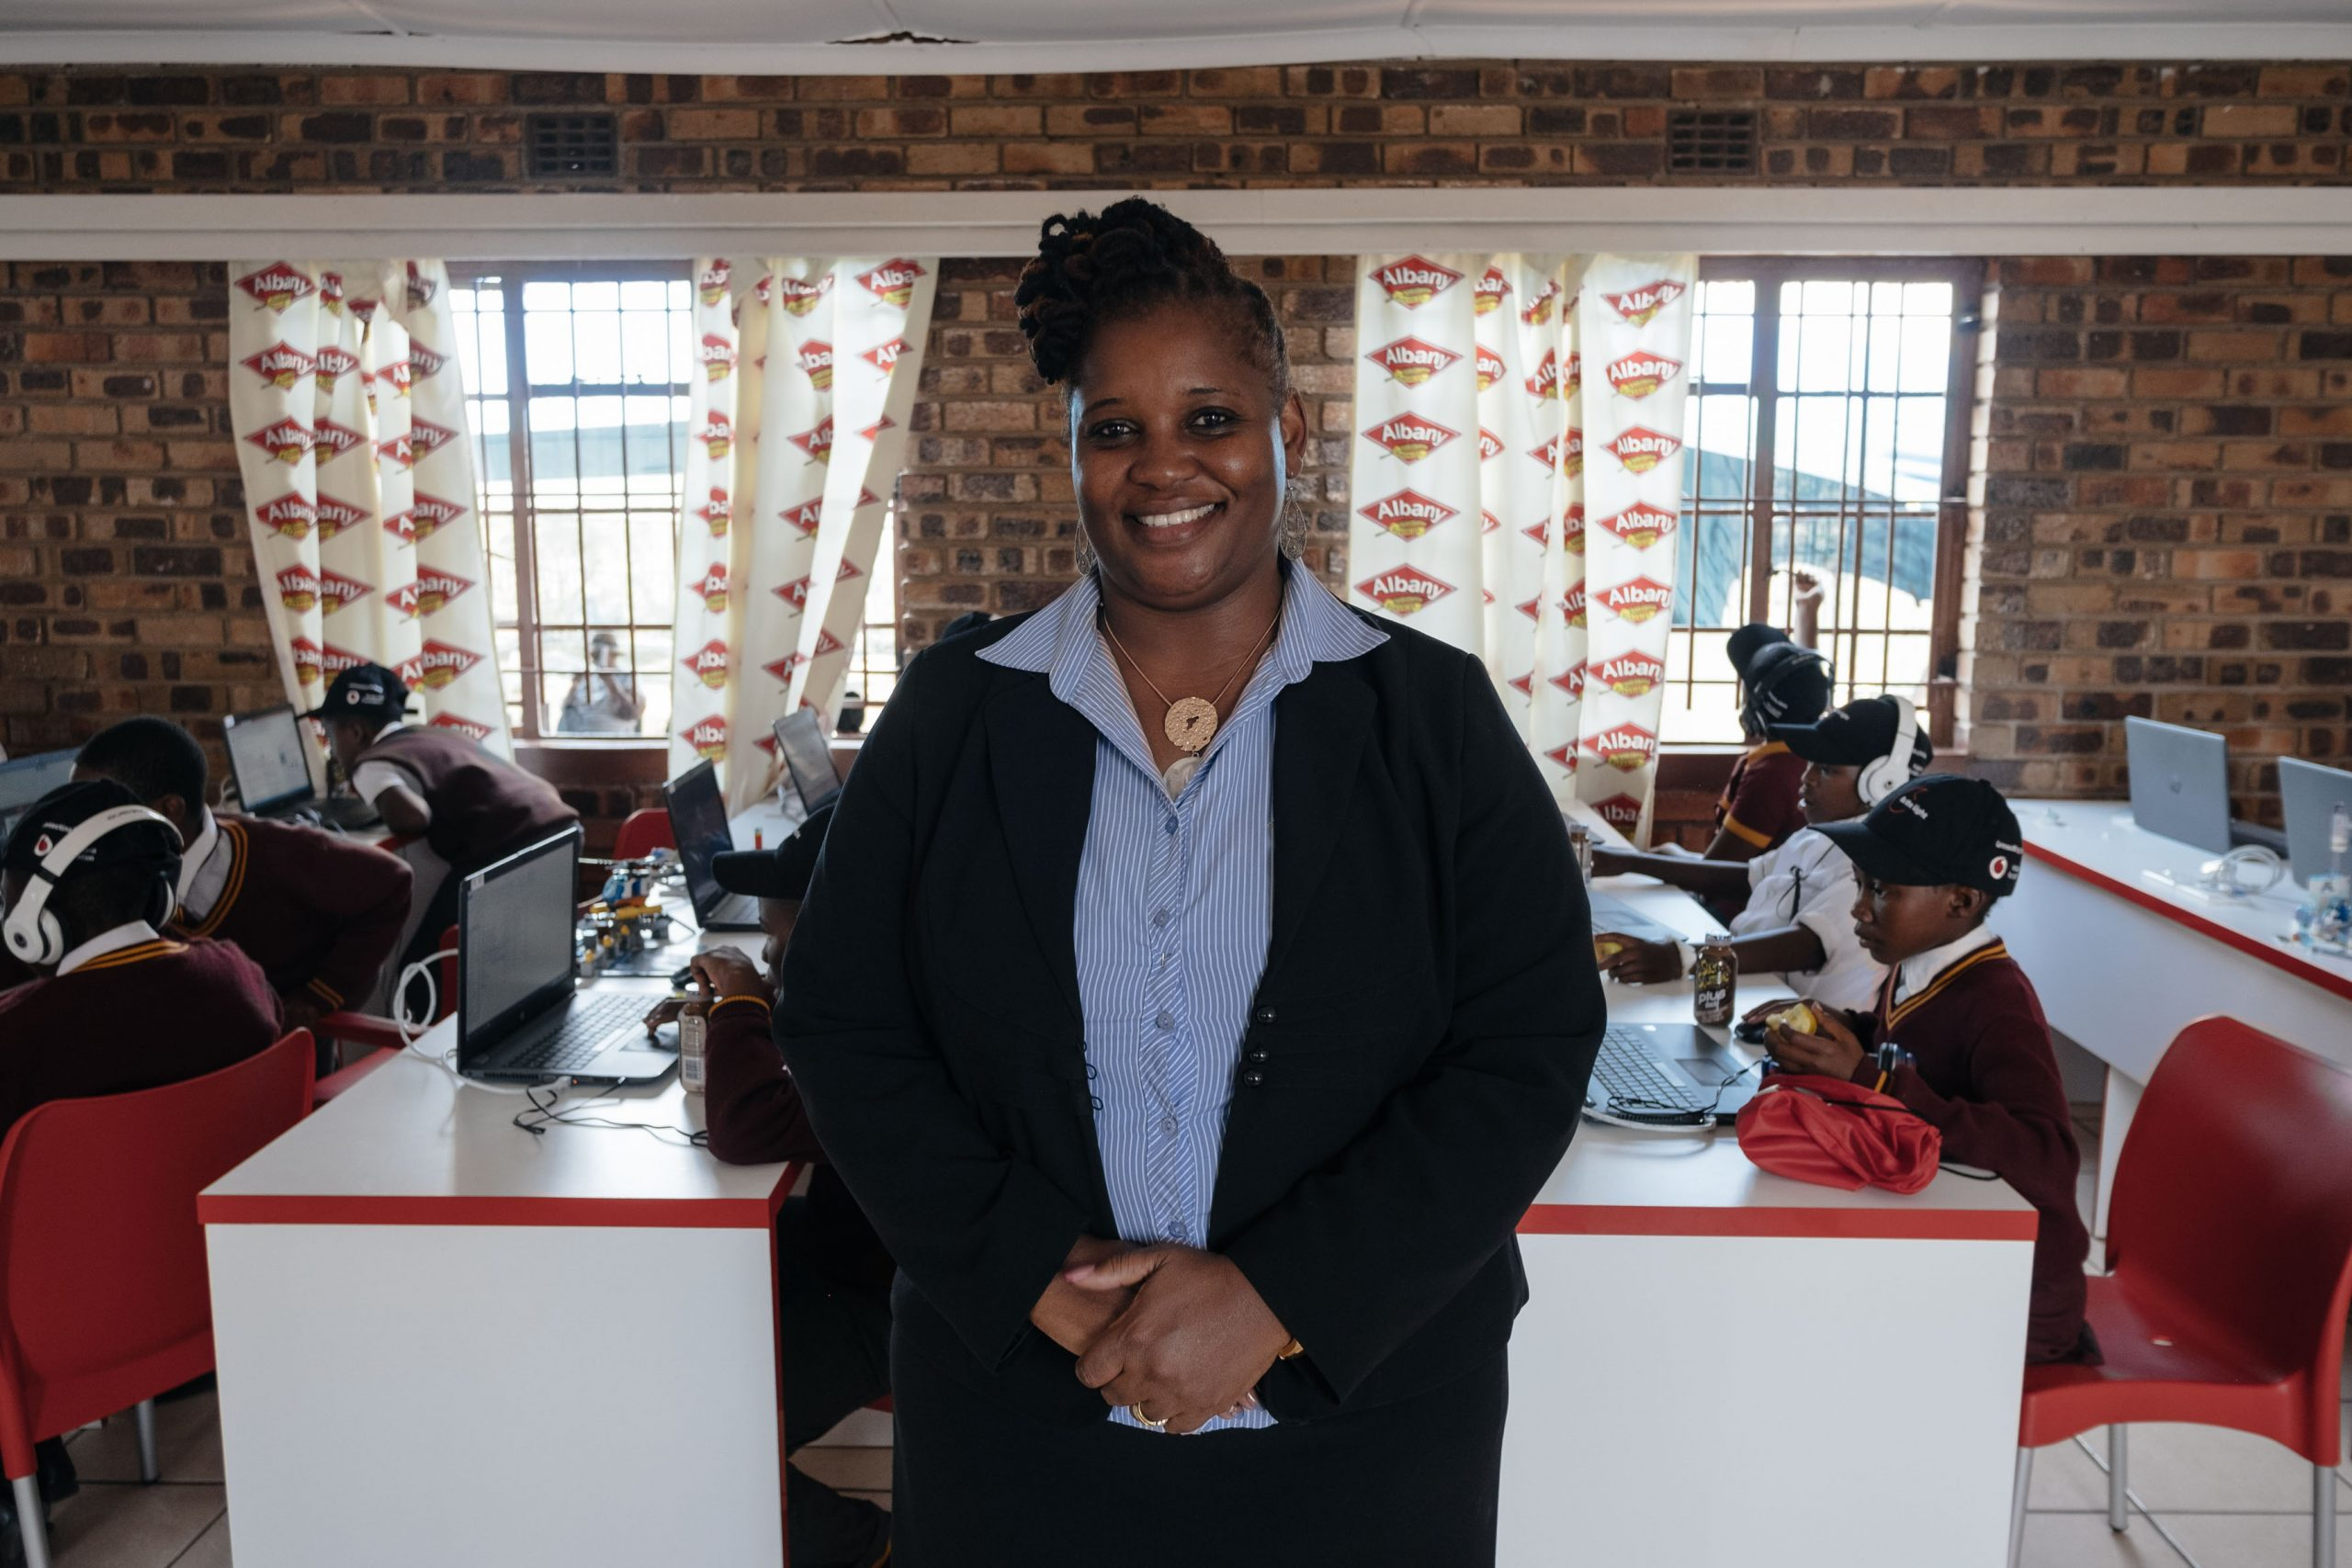 26 February 2020: Executive Director of the African Children's Feeding Scheme, Bertha Magoge, 49, at the computer lab in Meadowlands, Soweto.